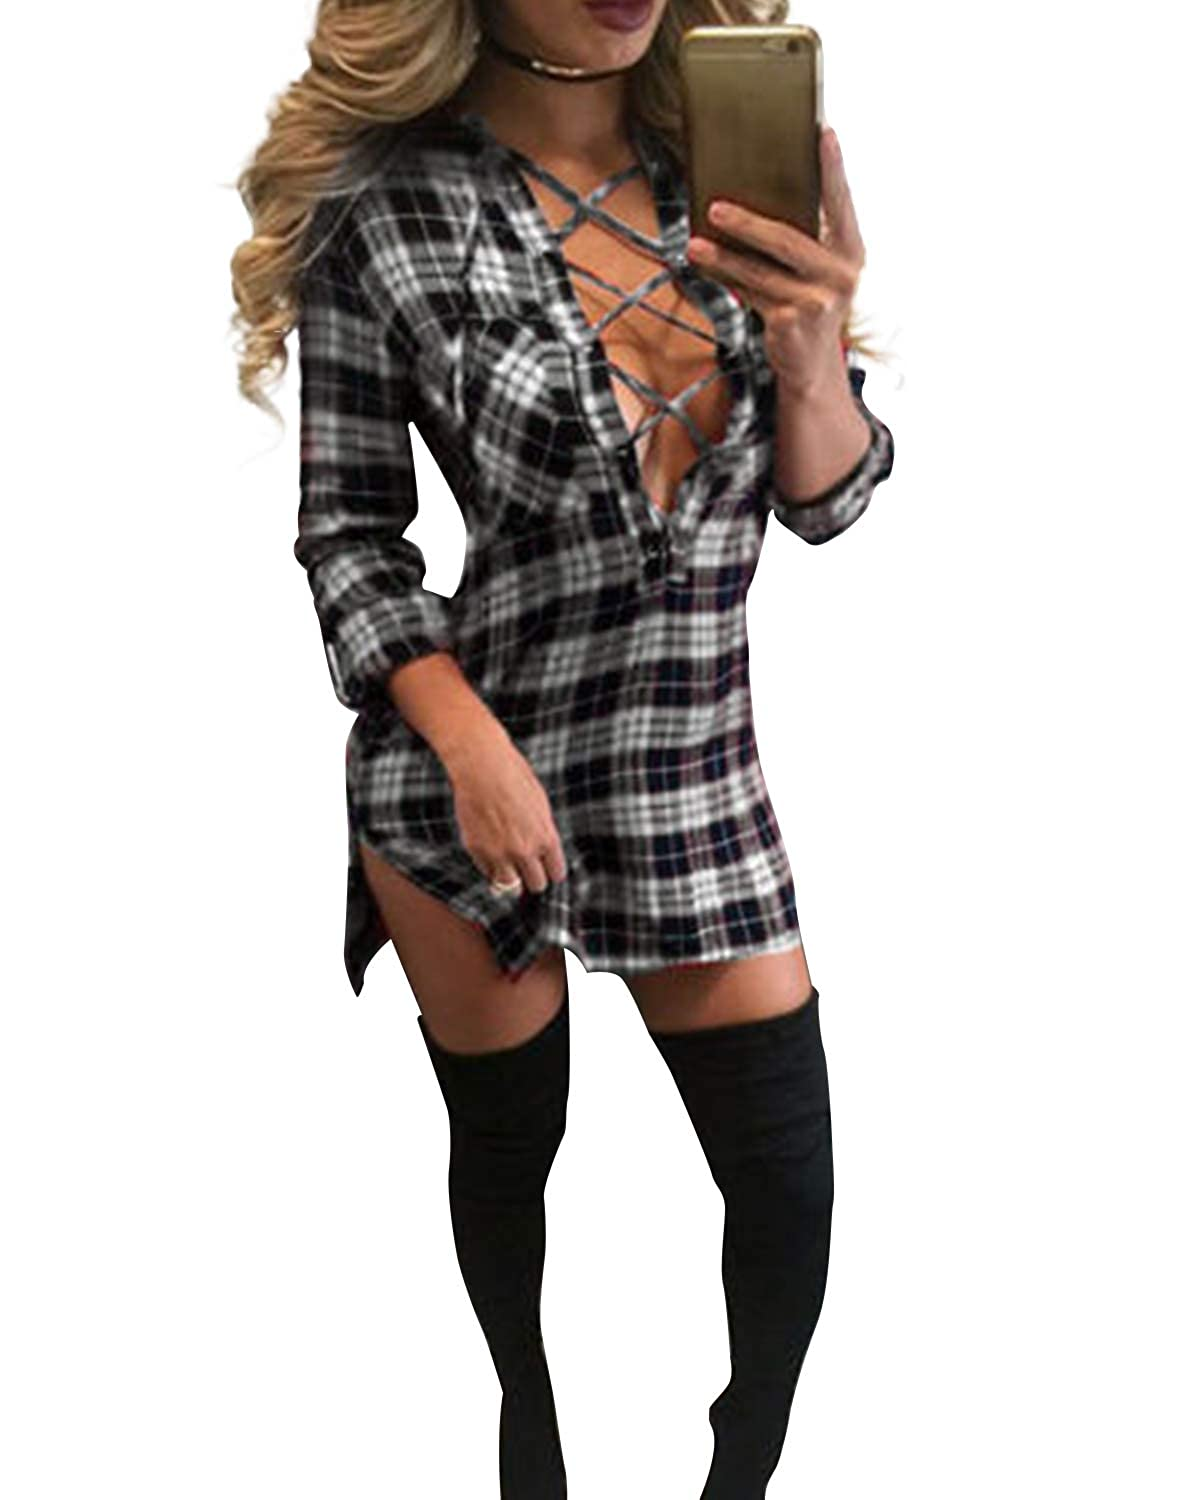 63cdeeca61 Auxo Women Lace Up Shirt Bandage Dress Plaid Checkered Deep V Neck Long  Sleeve Bodycon Dress at Amazon Women s Clothing store